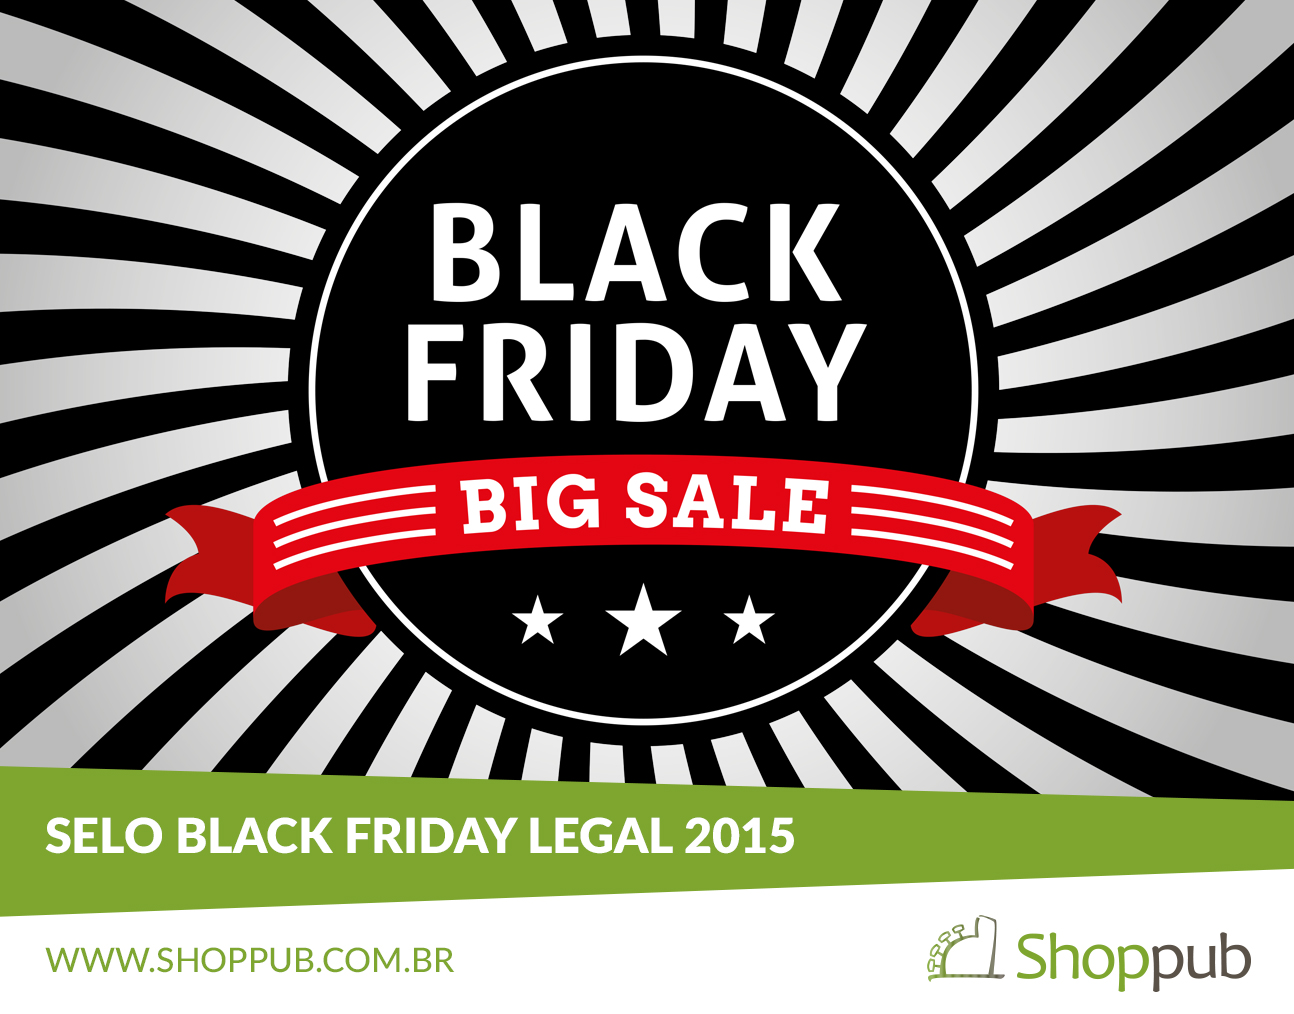 Aberta as inscrições para o Selo Black Friday Legal 2015